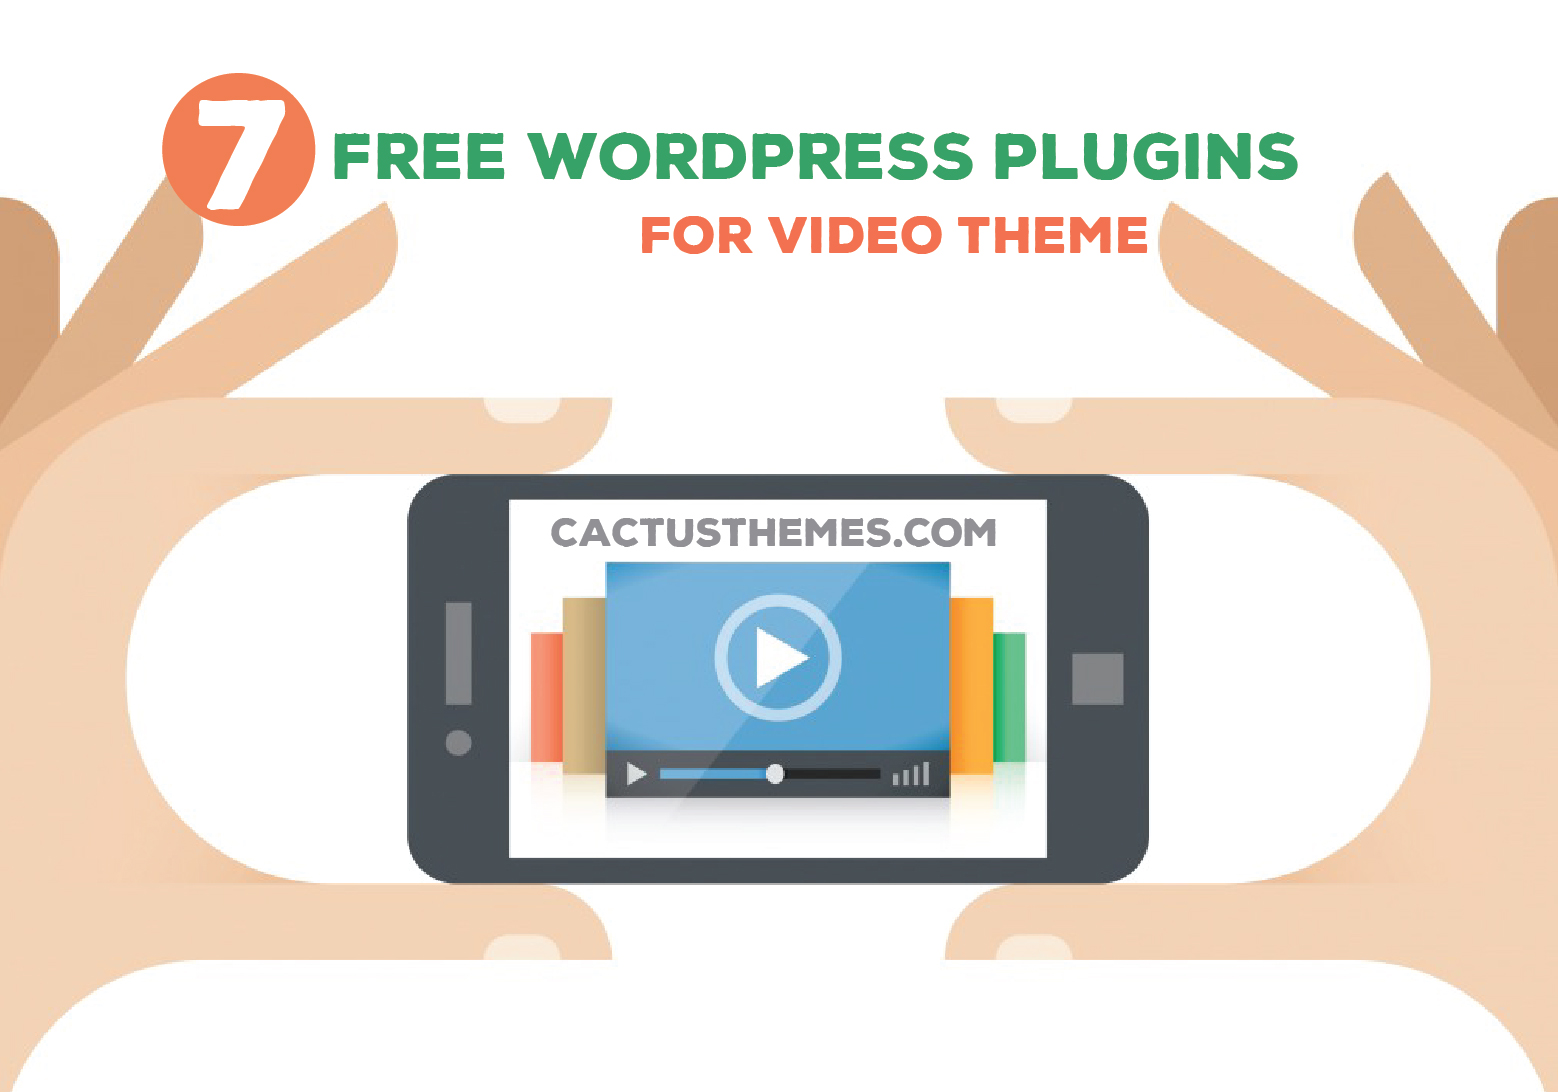 7 Free Wordpress plugins for video theme Free WordPress plugins for video theme is powerful …